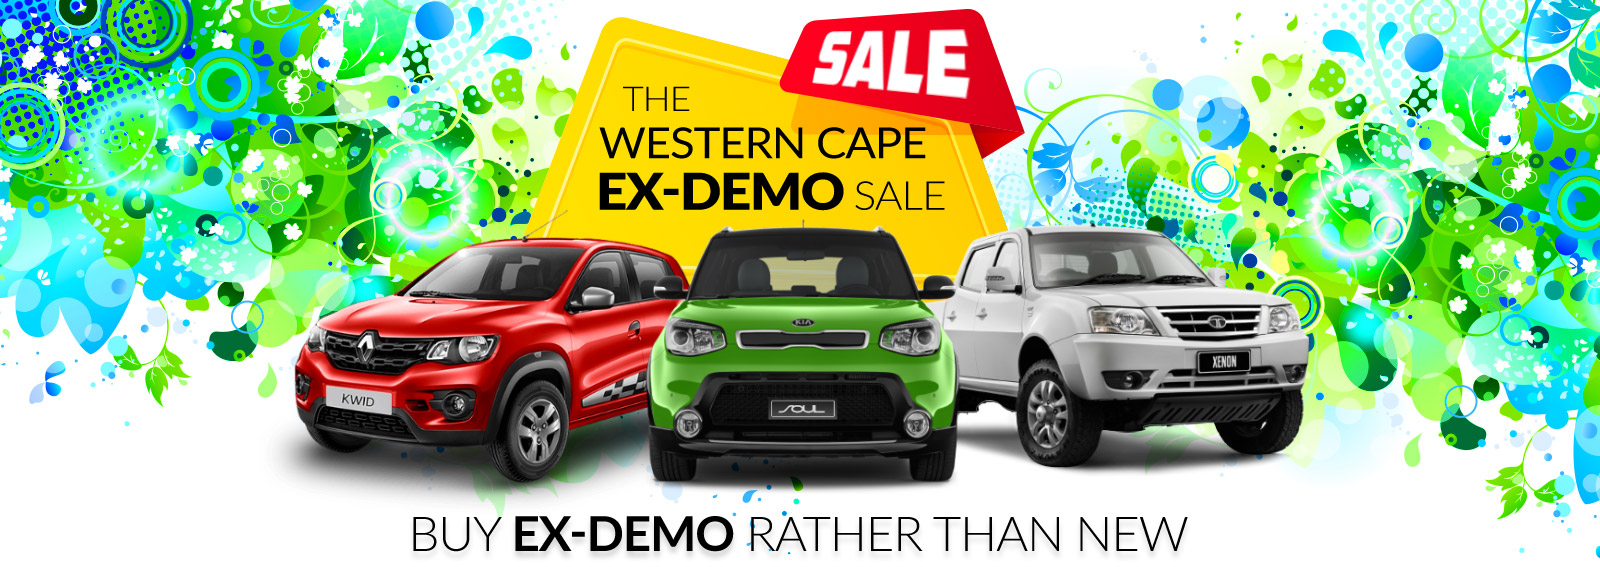 The Western Cape Ex-Demo Sale - KIA, Renault and TATA deals